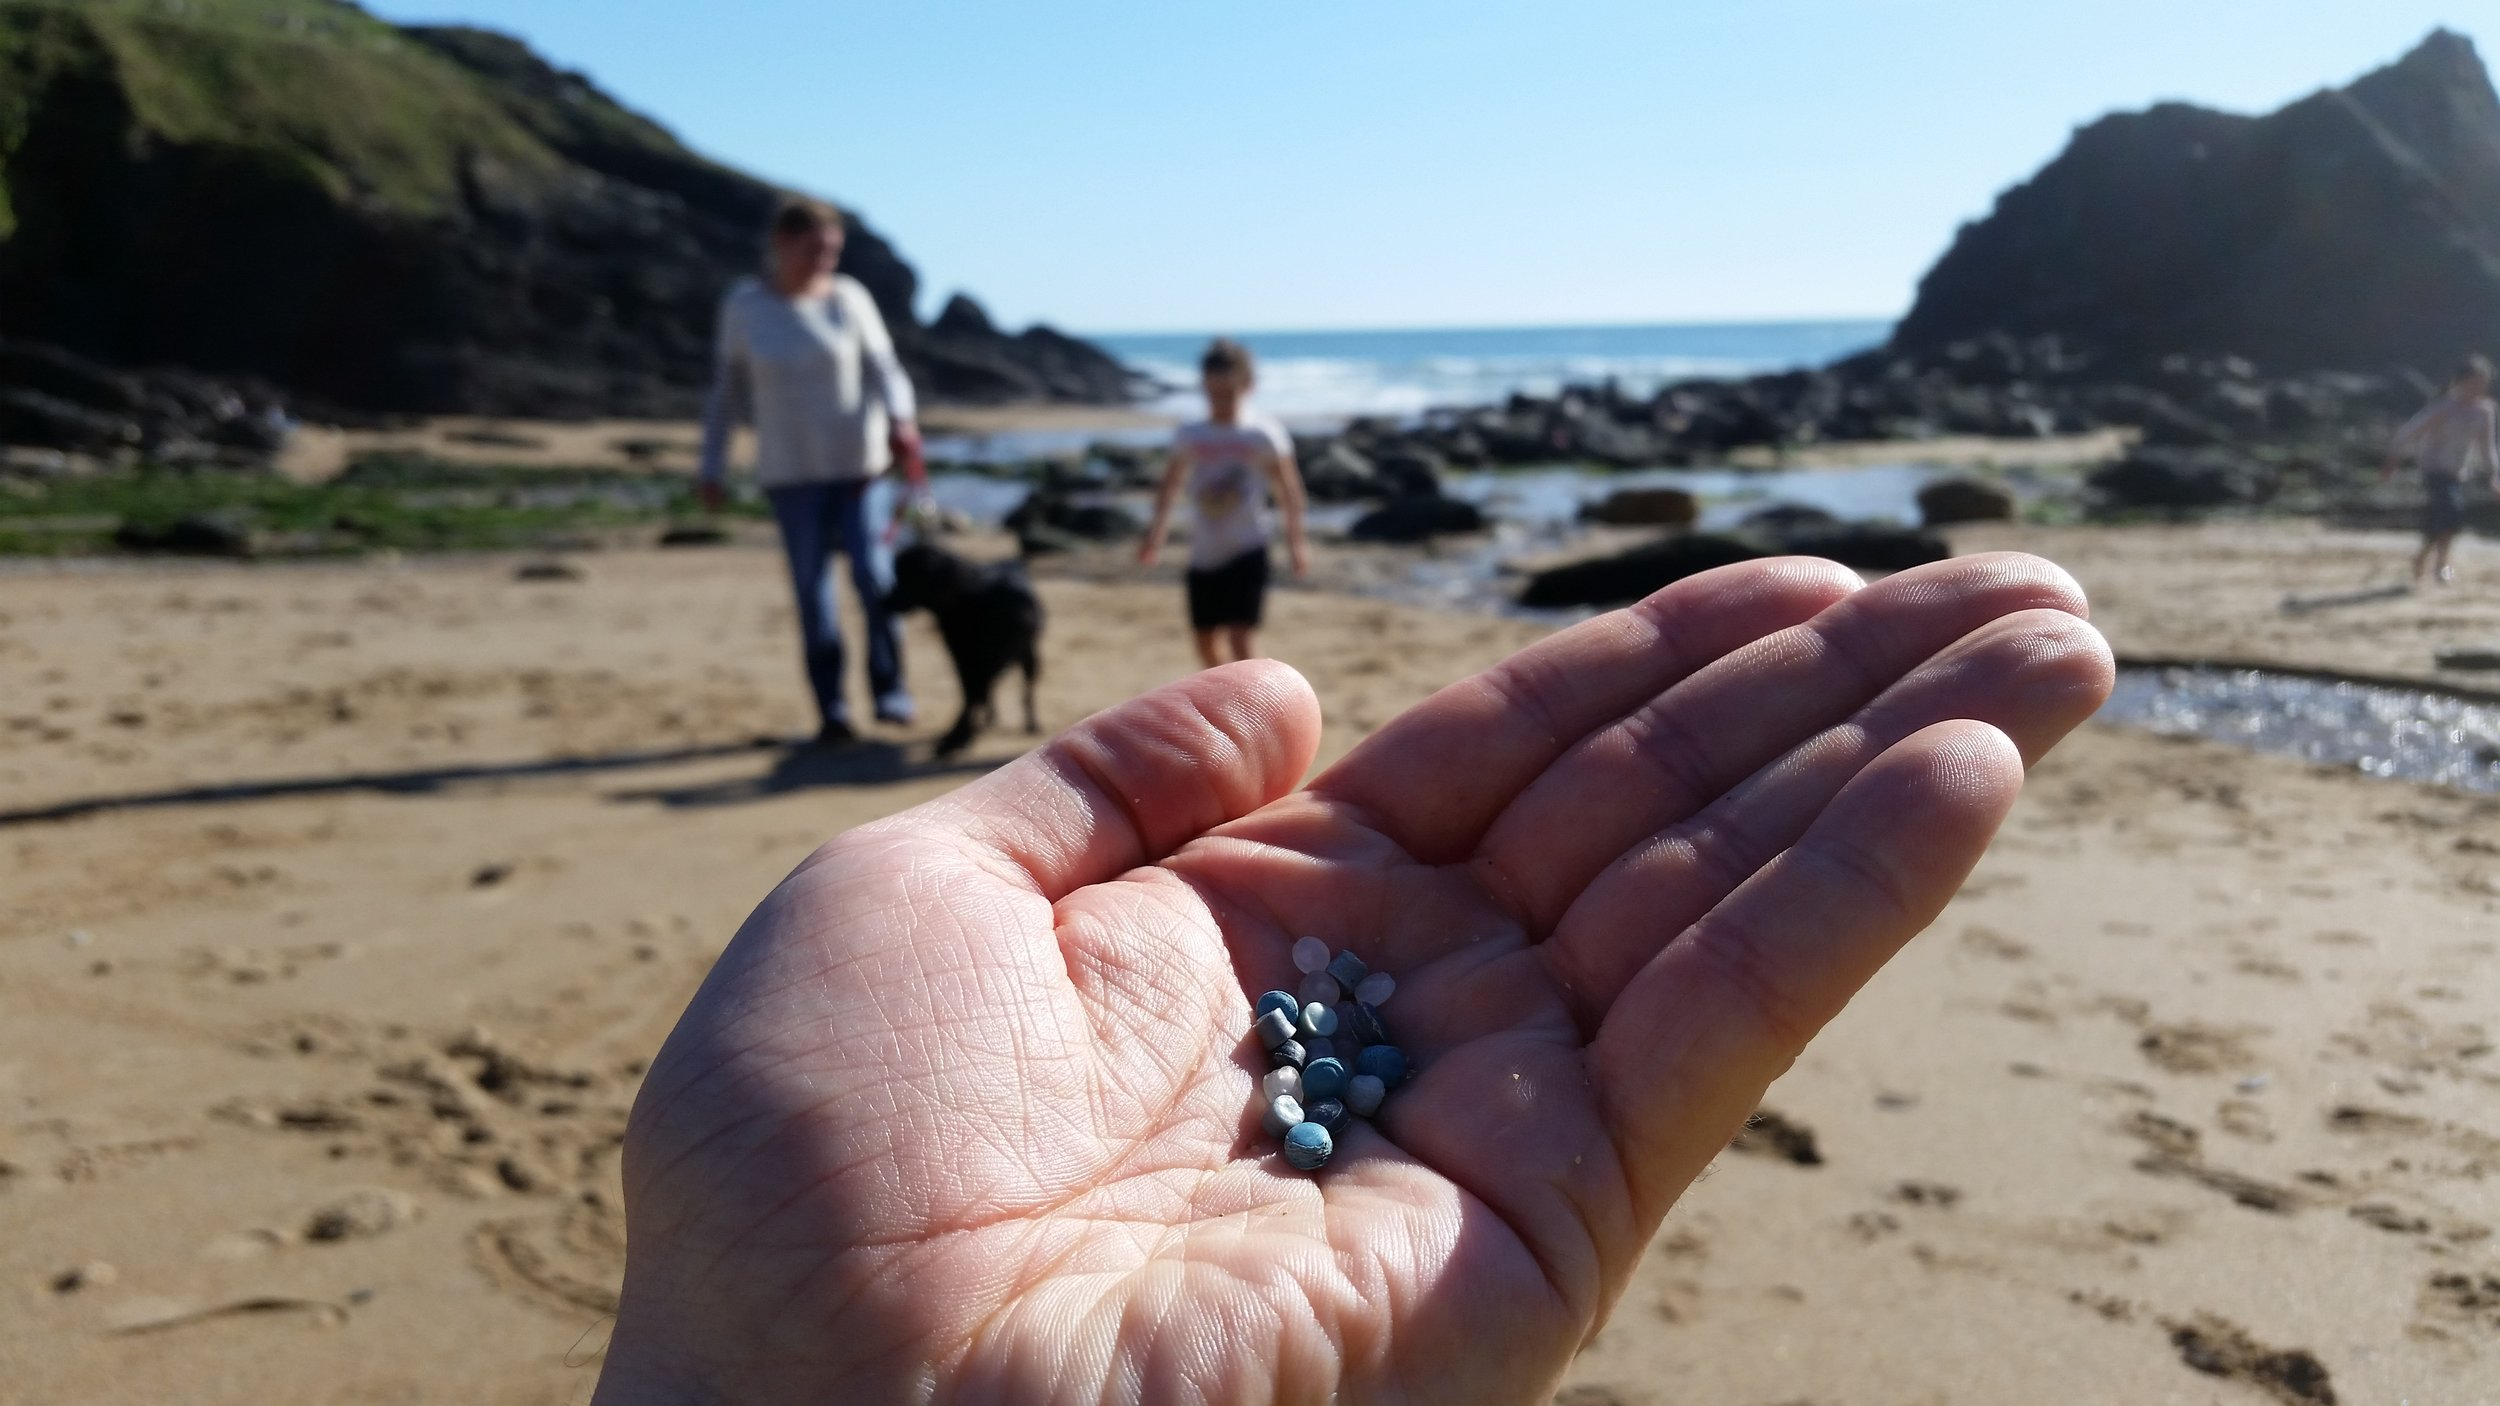 Fist full of nurdles;the bad boys of beach litter. These tiny balls of plastic are used as raw material in industrial processes. They are often spilled into the environment and are found in their hundreds of thousands on beaches around the world.